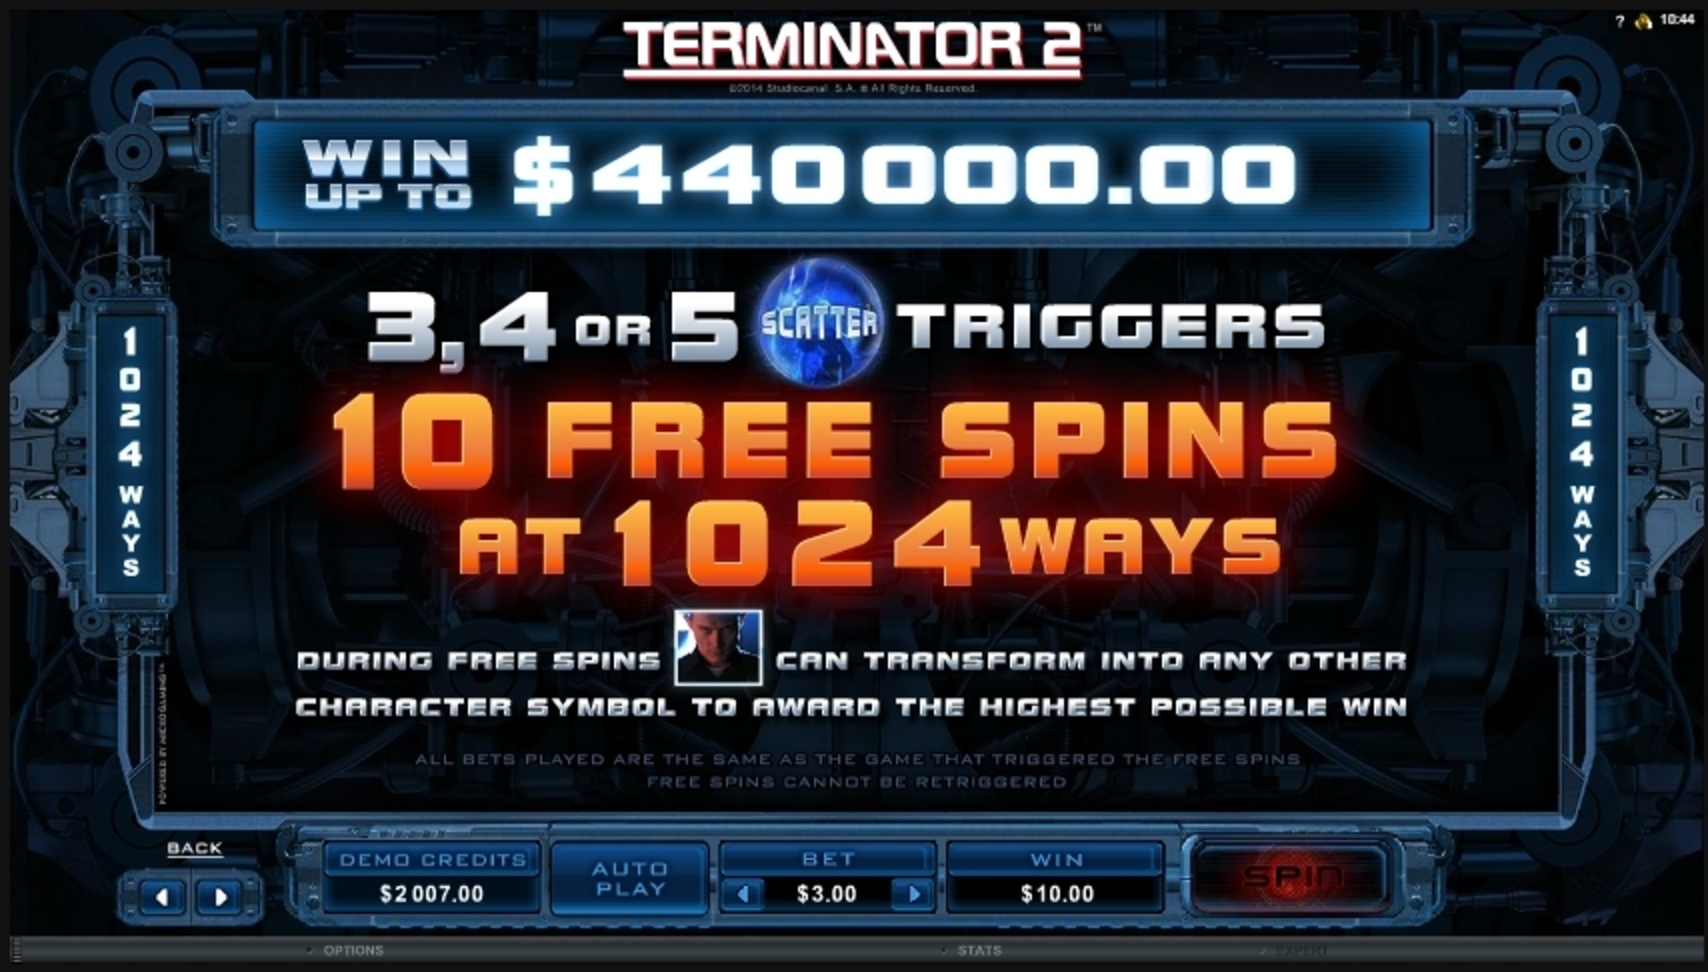 Info of Terminator 2 Slot Game by Microgaming